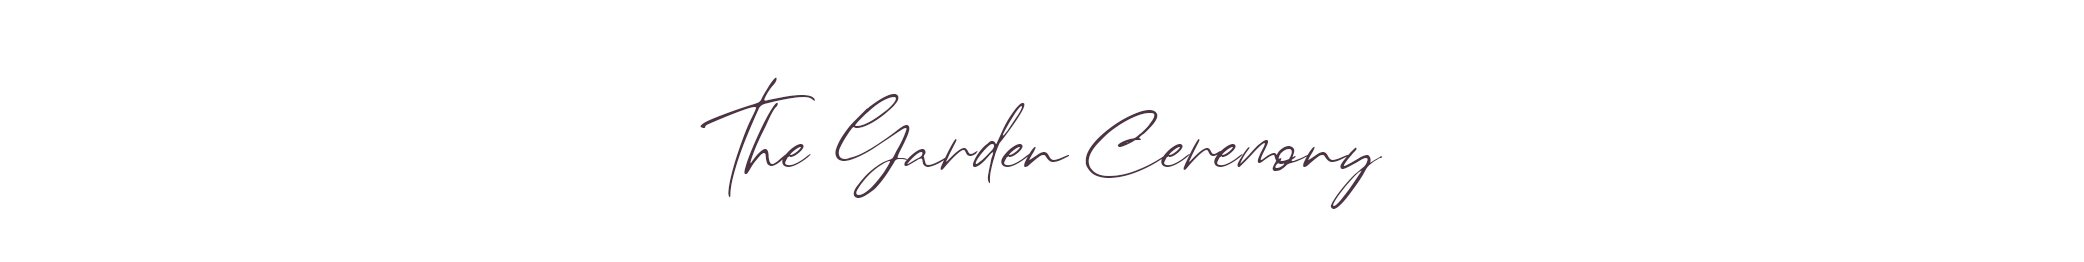 garden-ceremony-wedding-flowers-prices-costs-sydney-packages